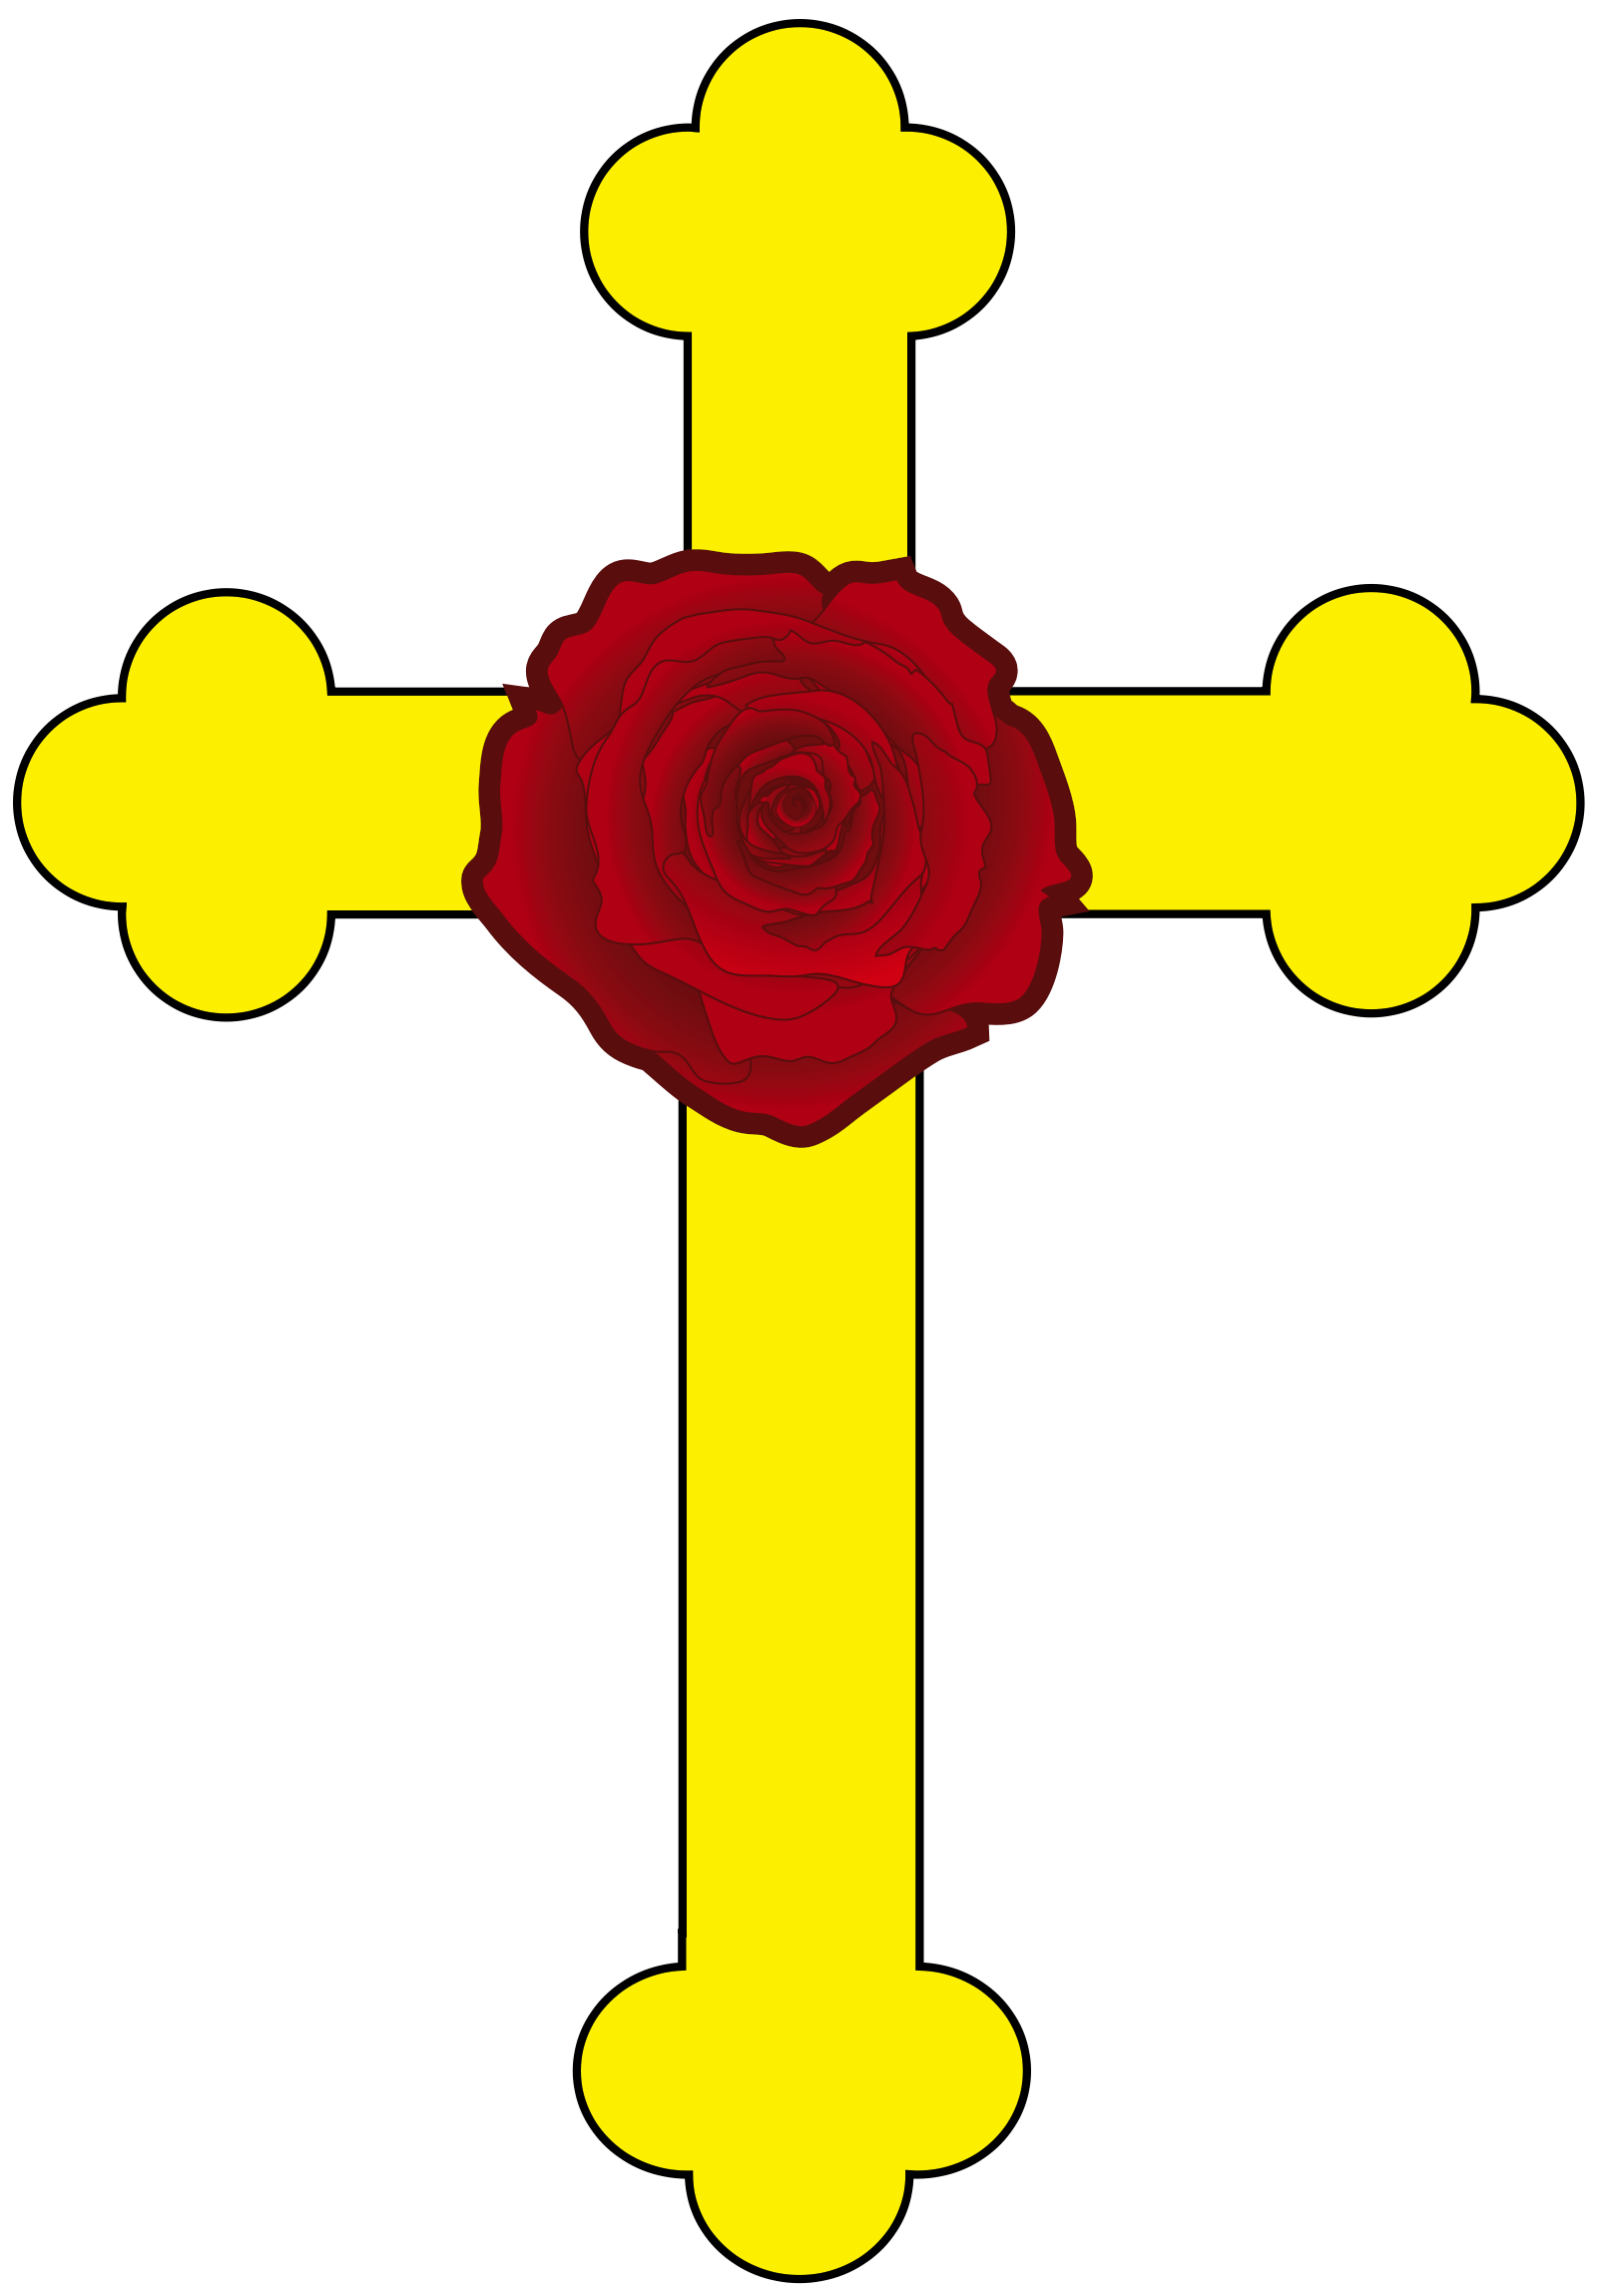 graphic about Religious Cross Template Printable identified as Rose Cross - Wikipedia